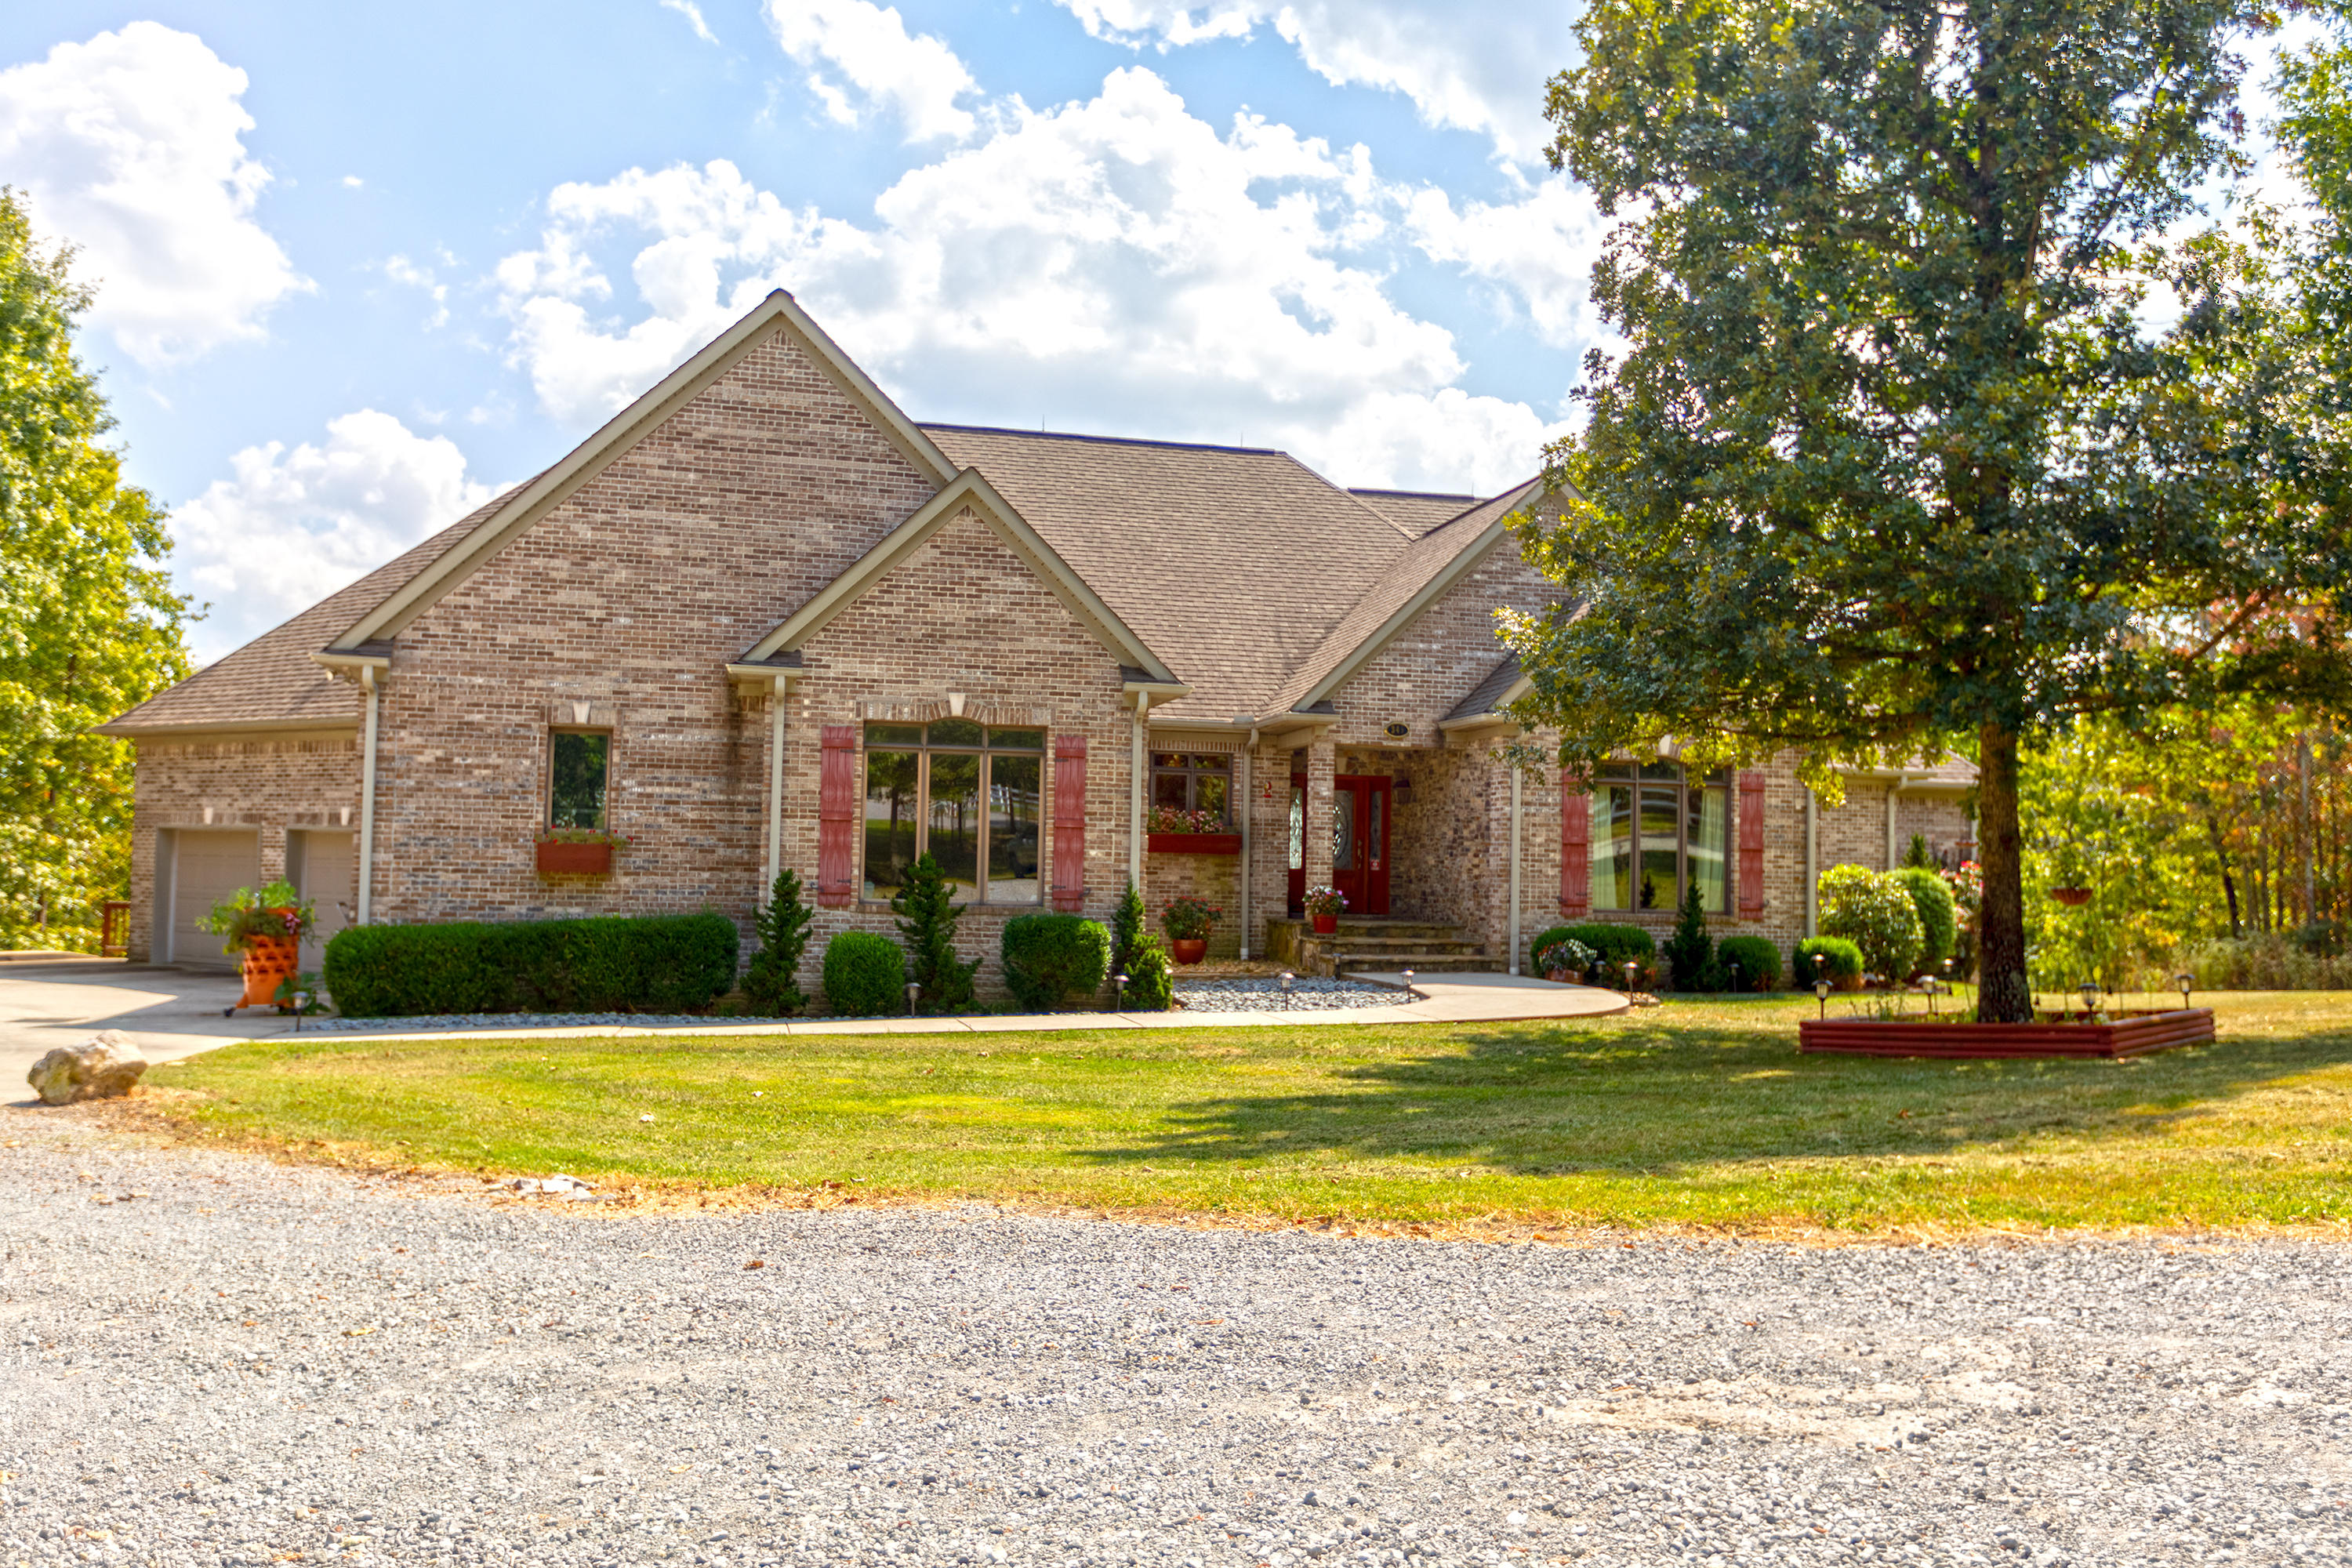 349 Deer Point, Dunlap, TN 37327